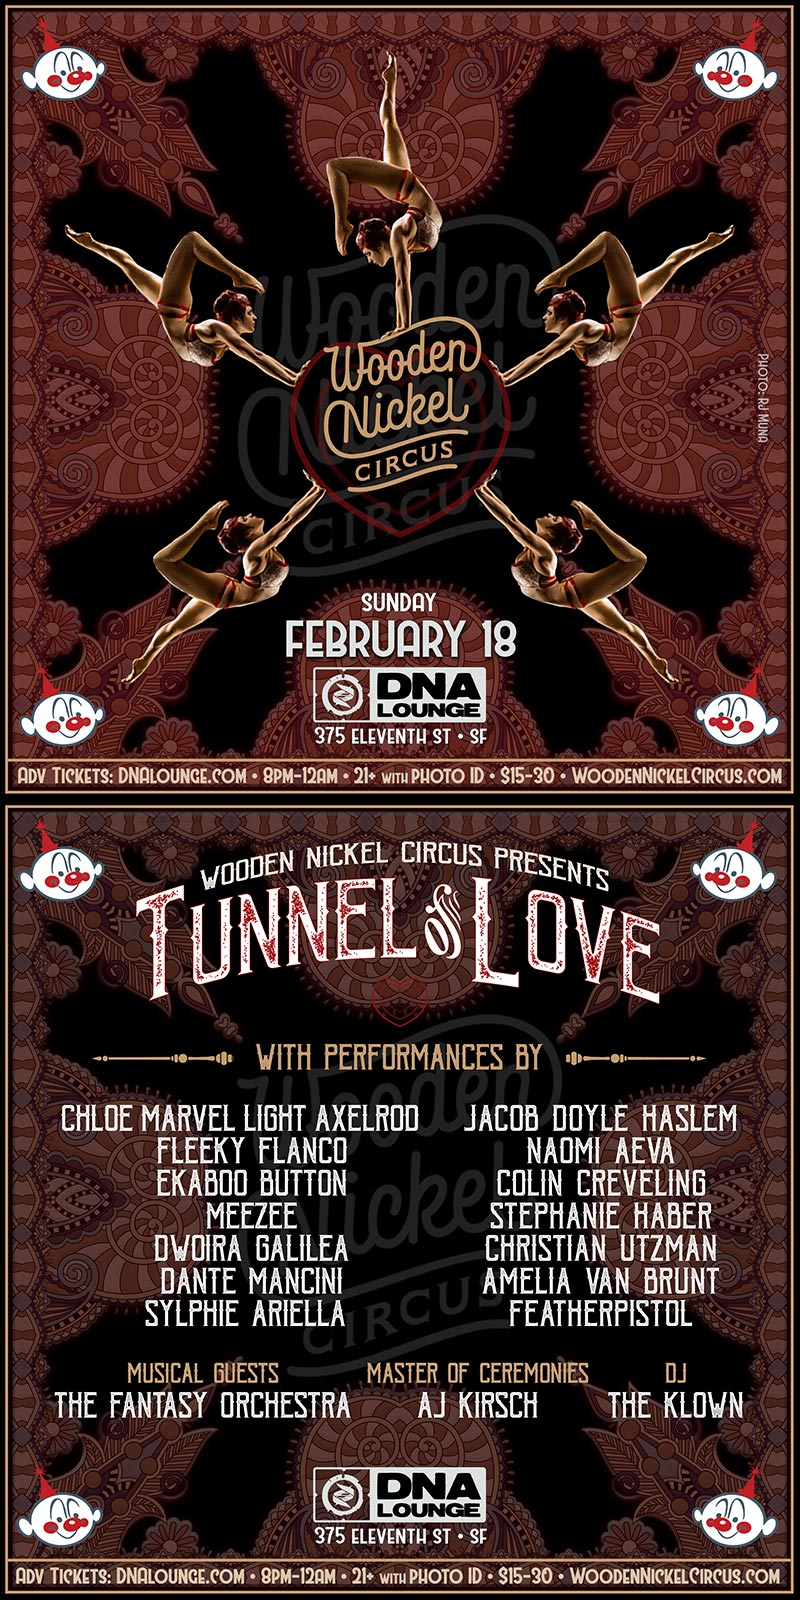 Wooden Nickel Circus presents Tunnel of Love - February 18, 2018 - DNA Lounge in San Francisco